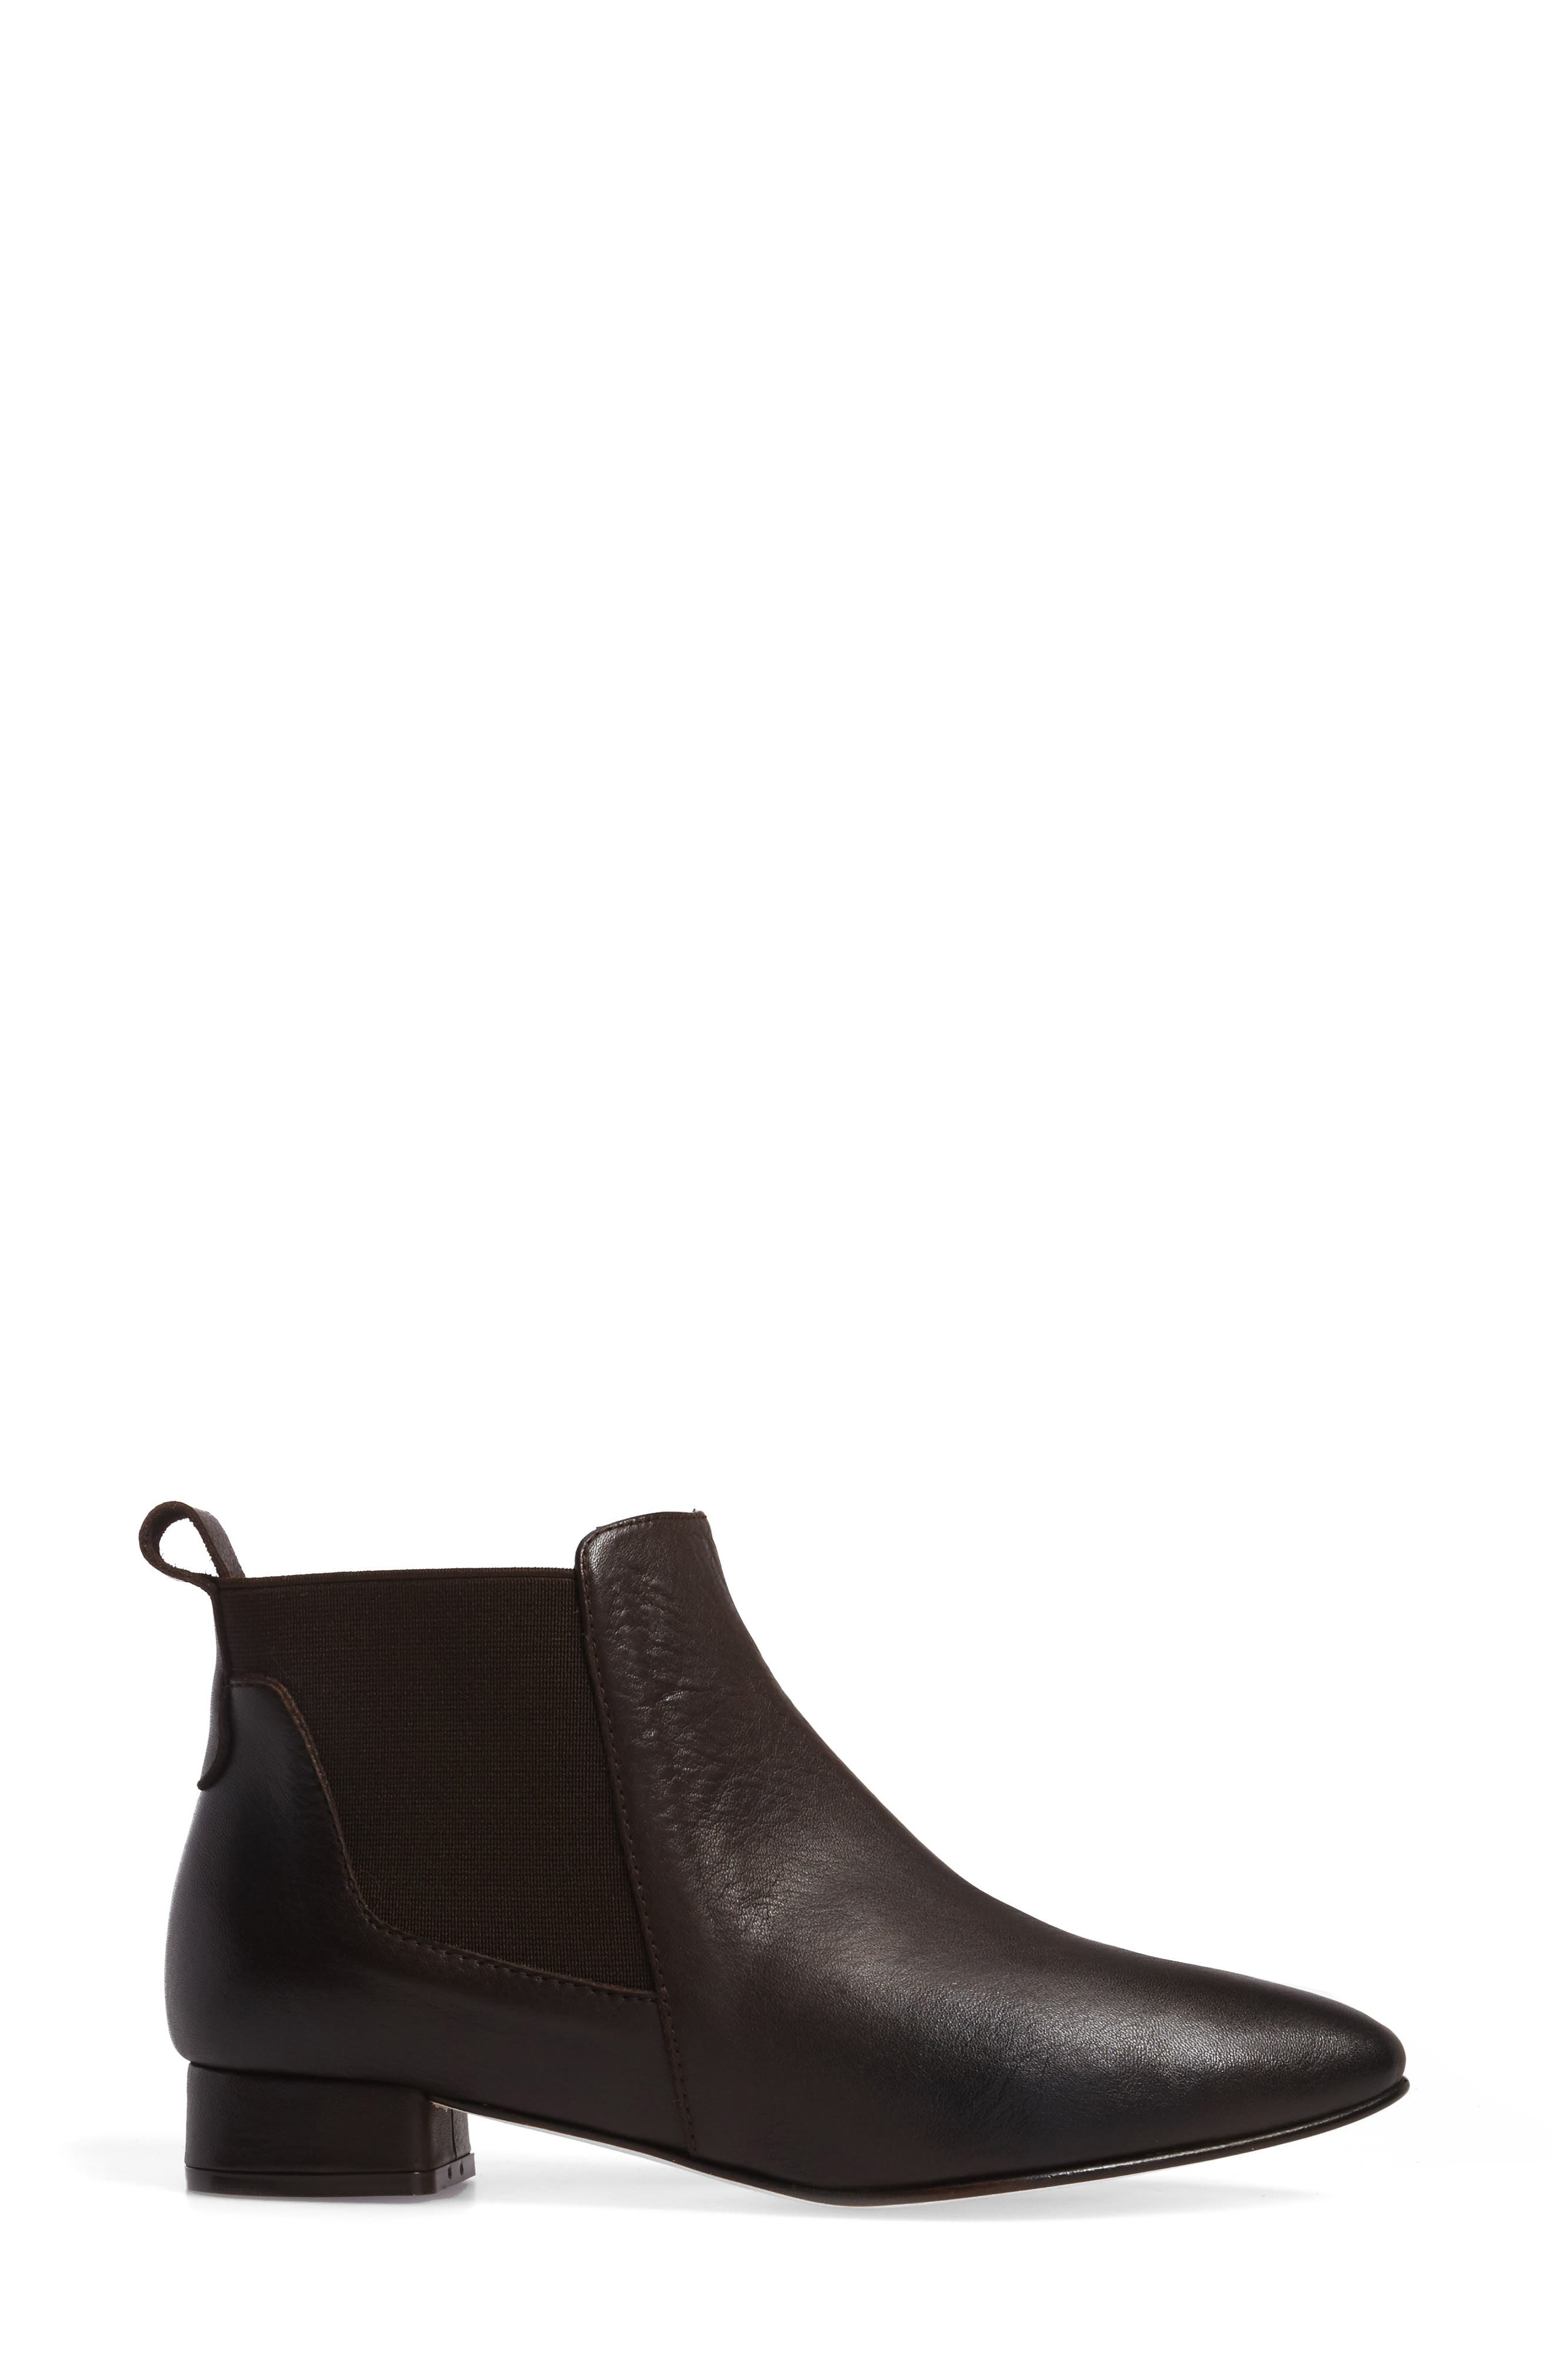 Newbury Bootie,                             Alternate thumbnail 3, color,                             Chocolate Leather